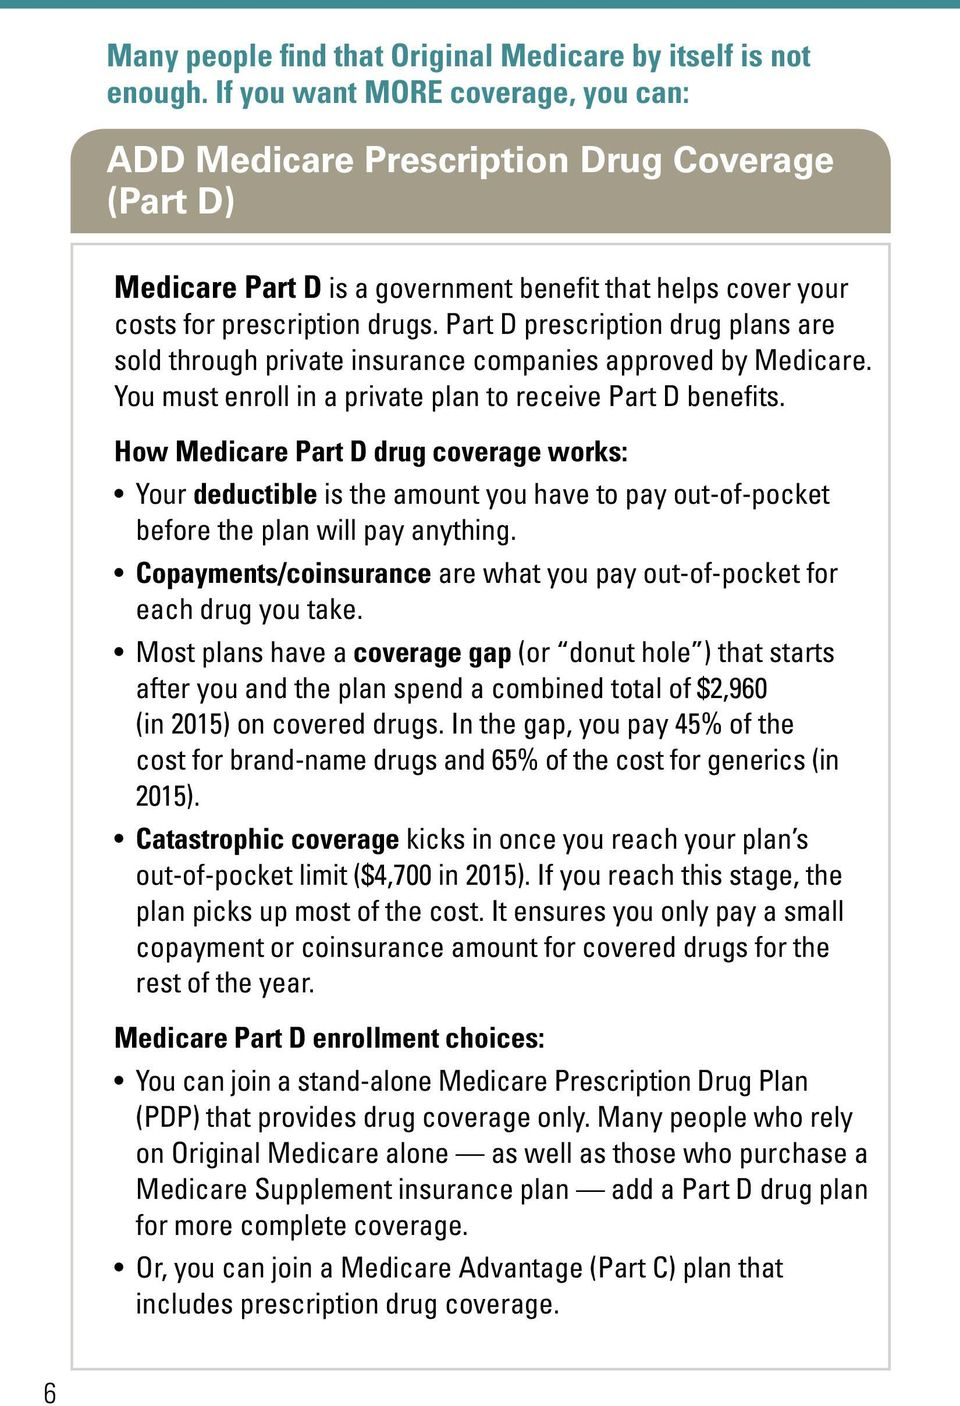 Part D prescription drug plans are sold through private insurance companies approved by Medicare. You must enroll in a private plan to receive Part D benefits.